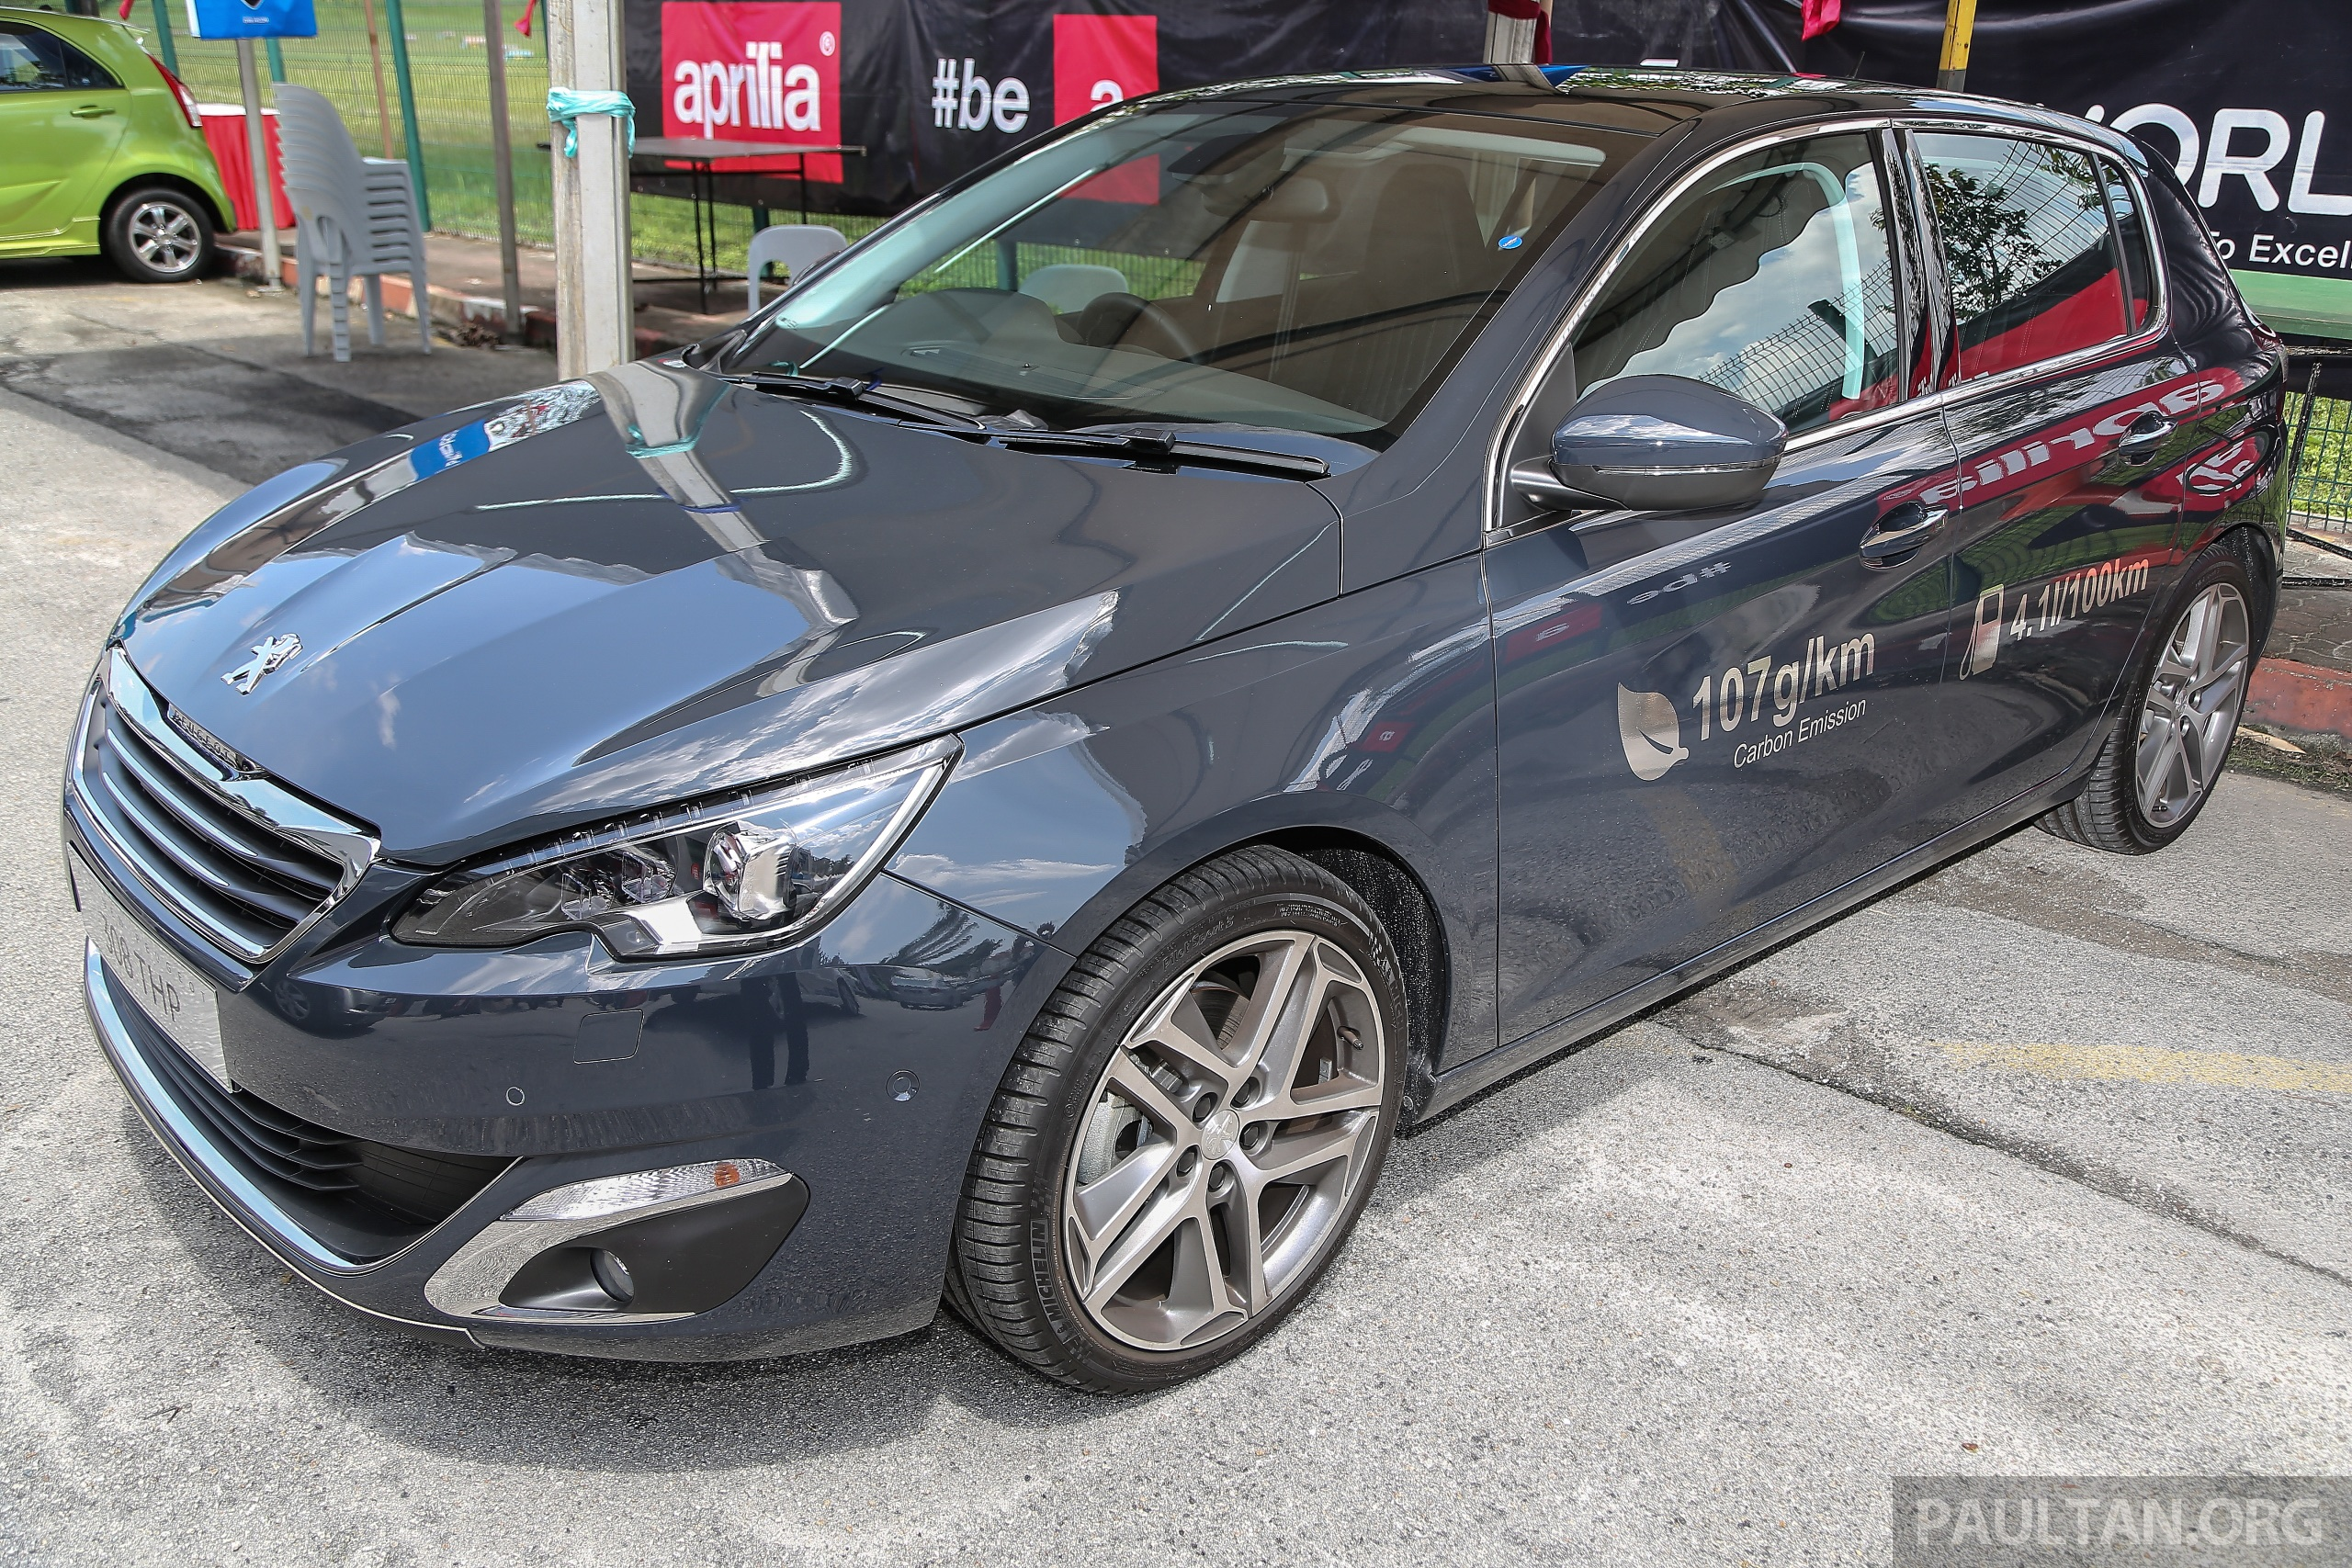 peugeot 308 2 0 hdi in m 39 sia 370 nm 1 300 km range. Black Bedroom Furniture Sets. Home Design Ideas